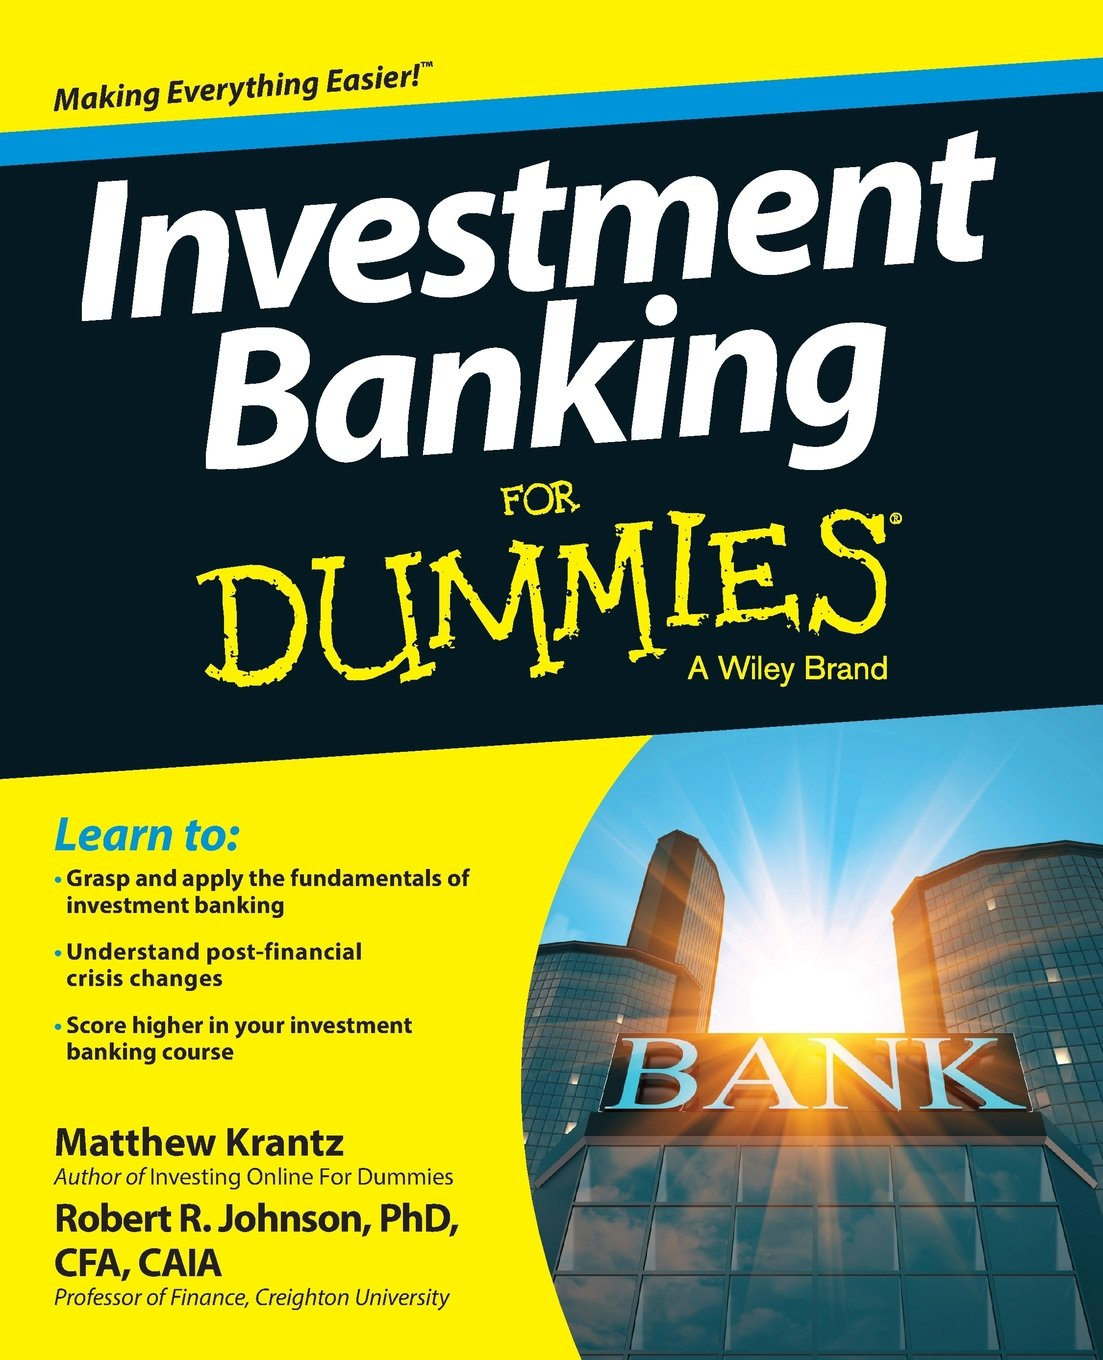 Buy investment banking for dummies for dummies series book buy investment banking for dummies for dummies series book online at low prices in india investment banking for dummies for dummies series reviews 1betcityfo Image collections